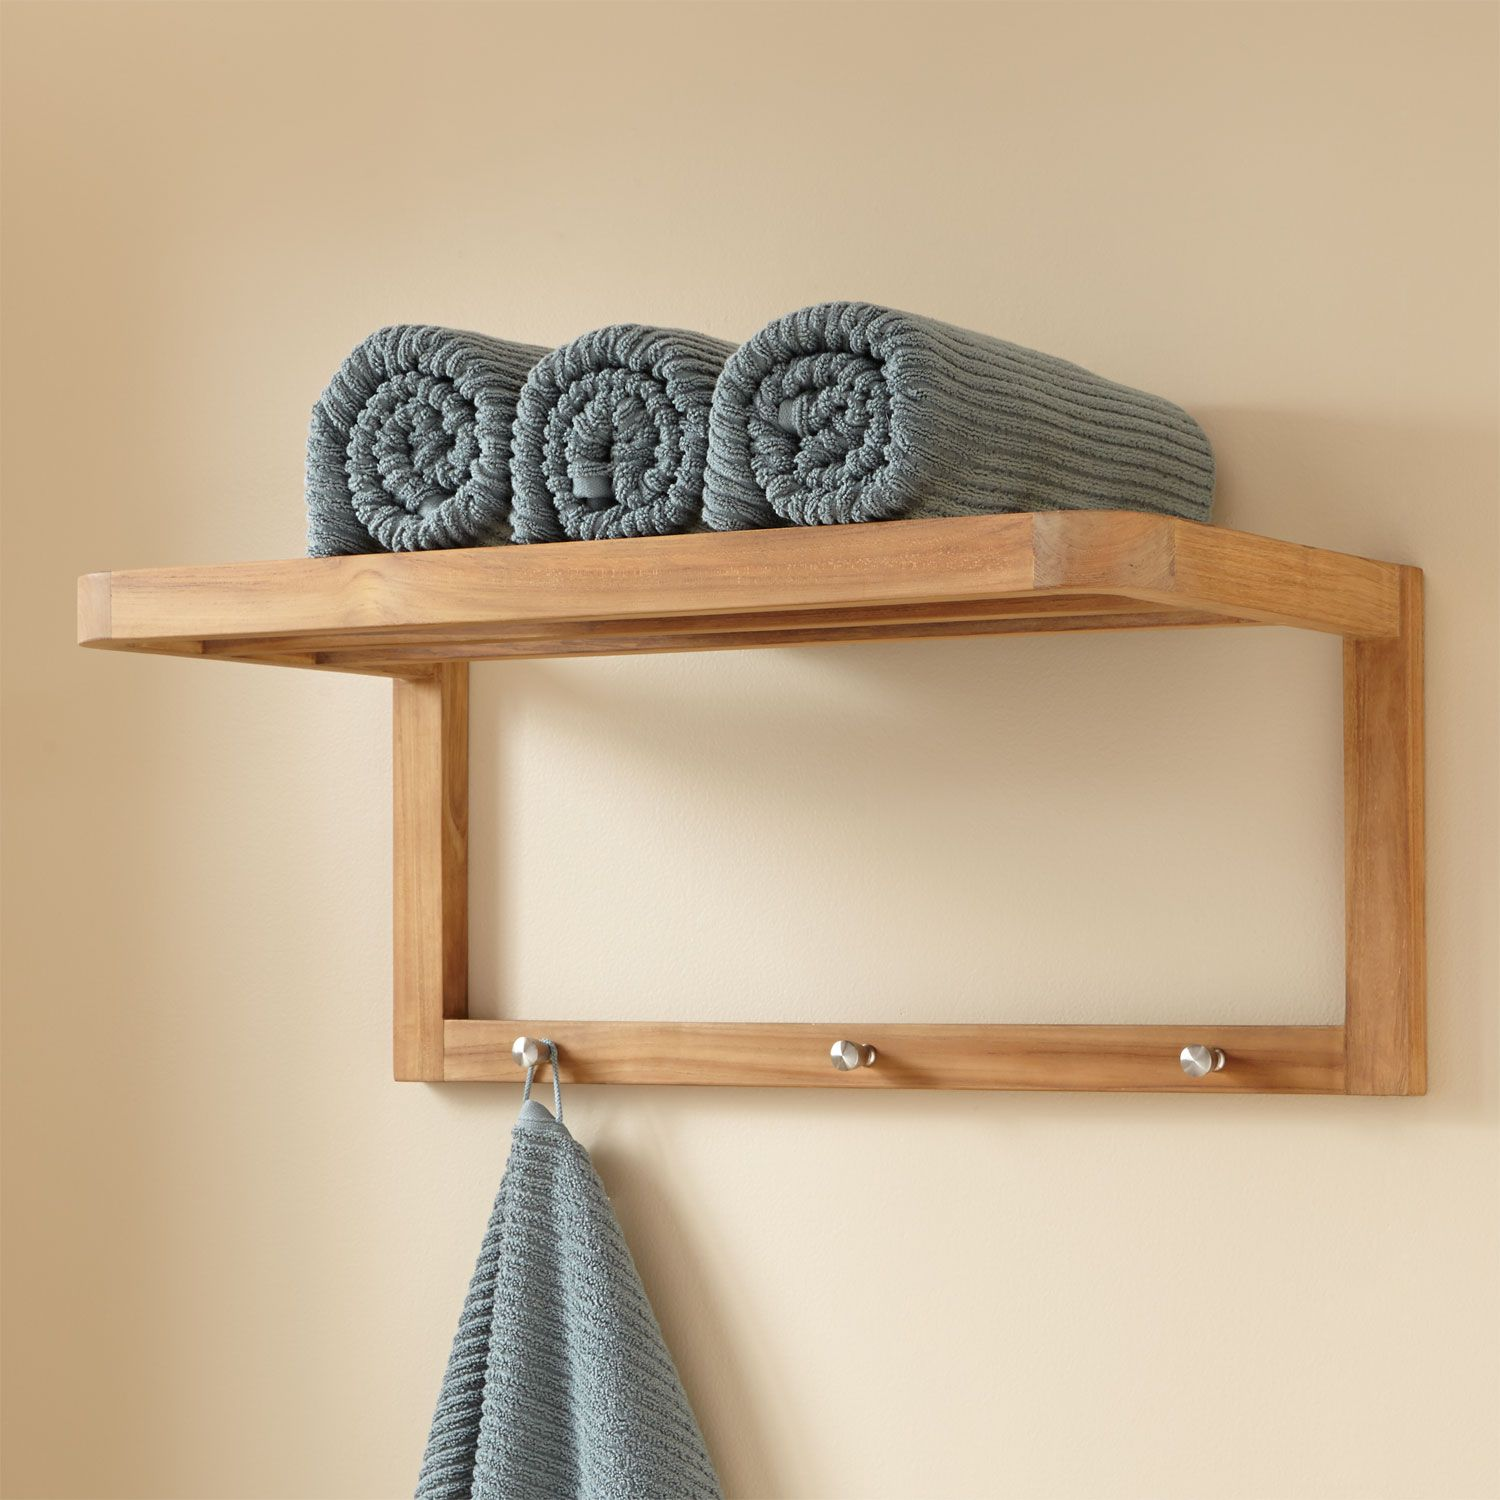 The Teak Towel Shelf Provides A Stylish Way For You To Keep Your